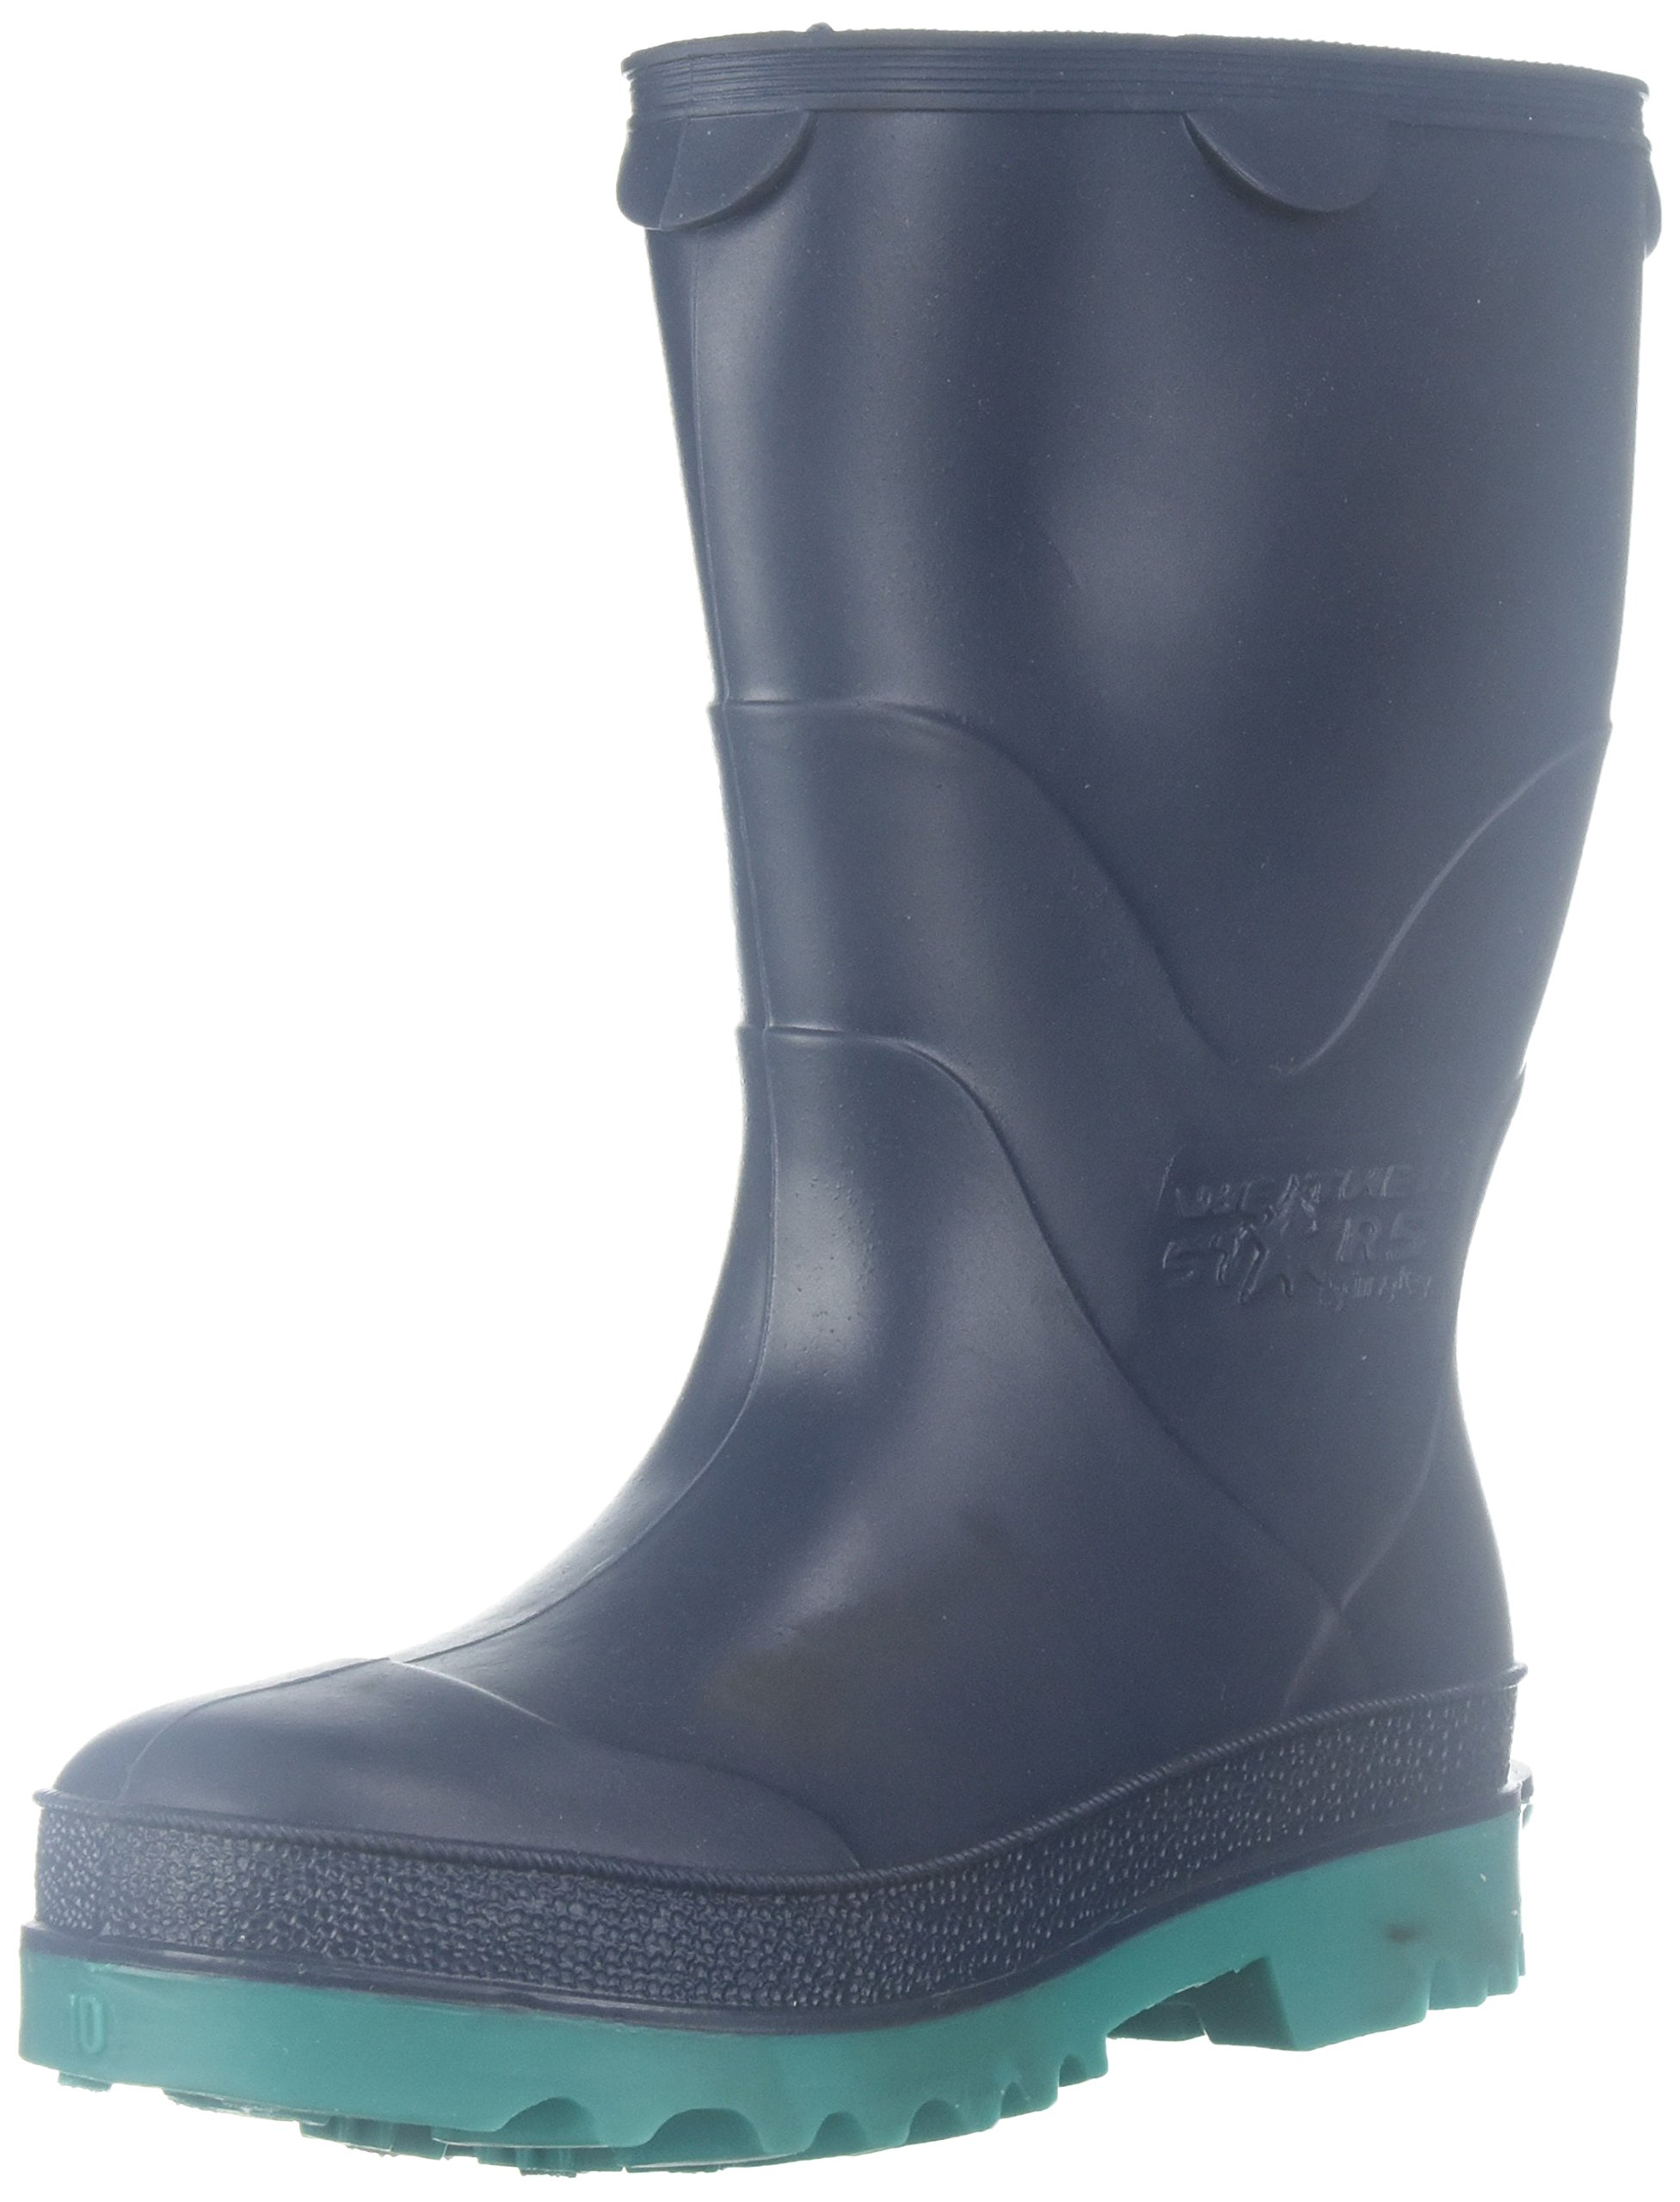 STORMTRACKS 11668.10 Child's Boot, Size 10, Blue/Green